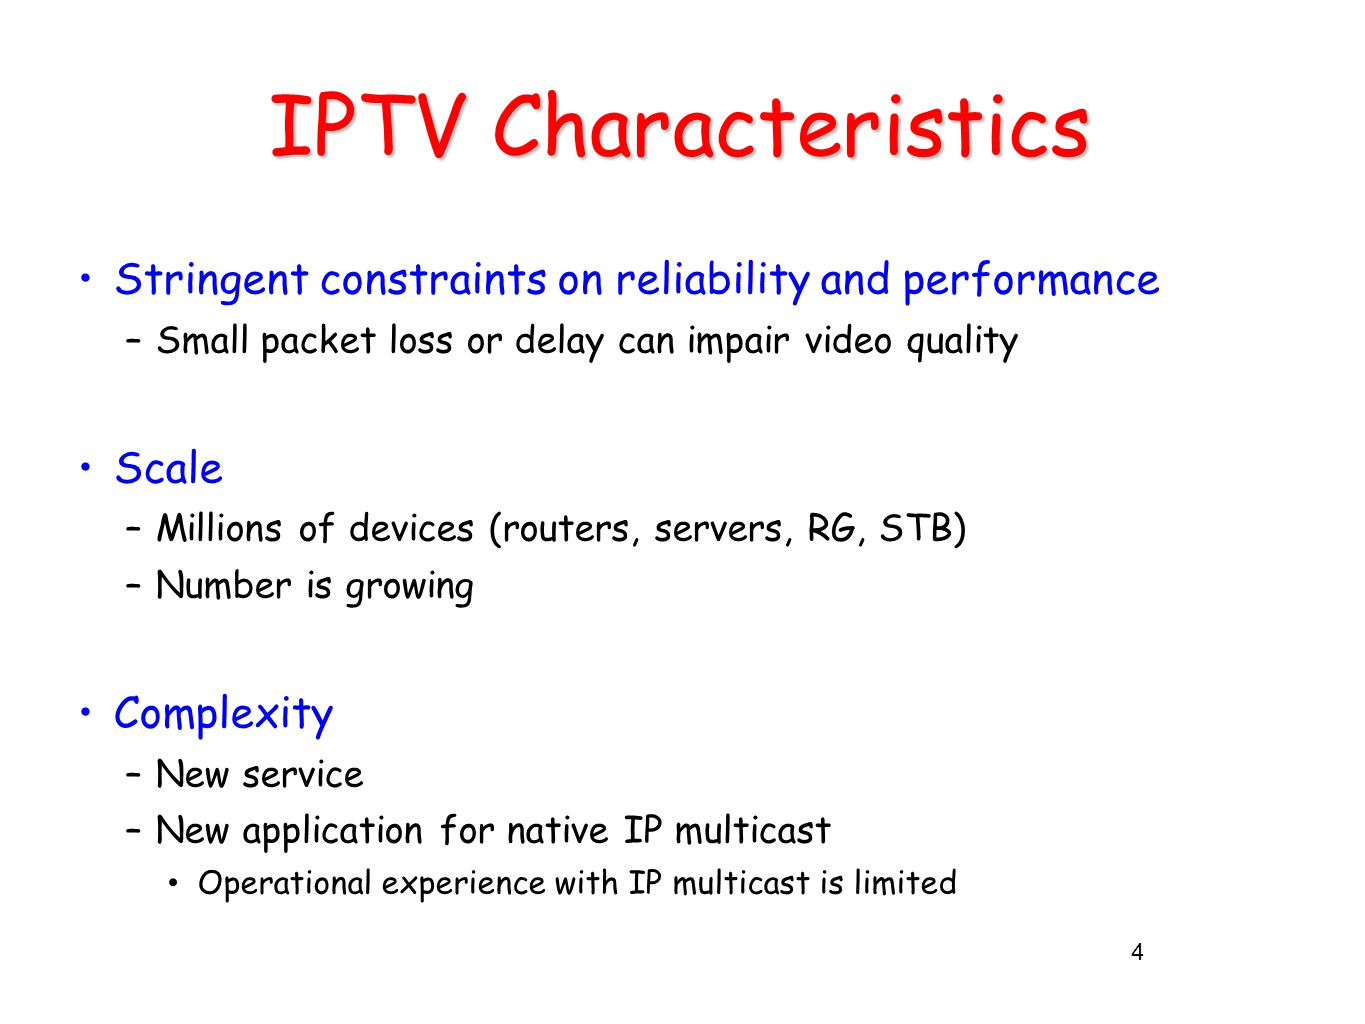 IPTV Characteristics Stringent constraints on reliability and performance –Small packet loss or delay can impair video quality Scale –Millions of devices (routers, servers, RG, STB) –Number is growing Complexity –New service –New application for native IP multicast Operational experience with IP multicast is limited 4